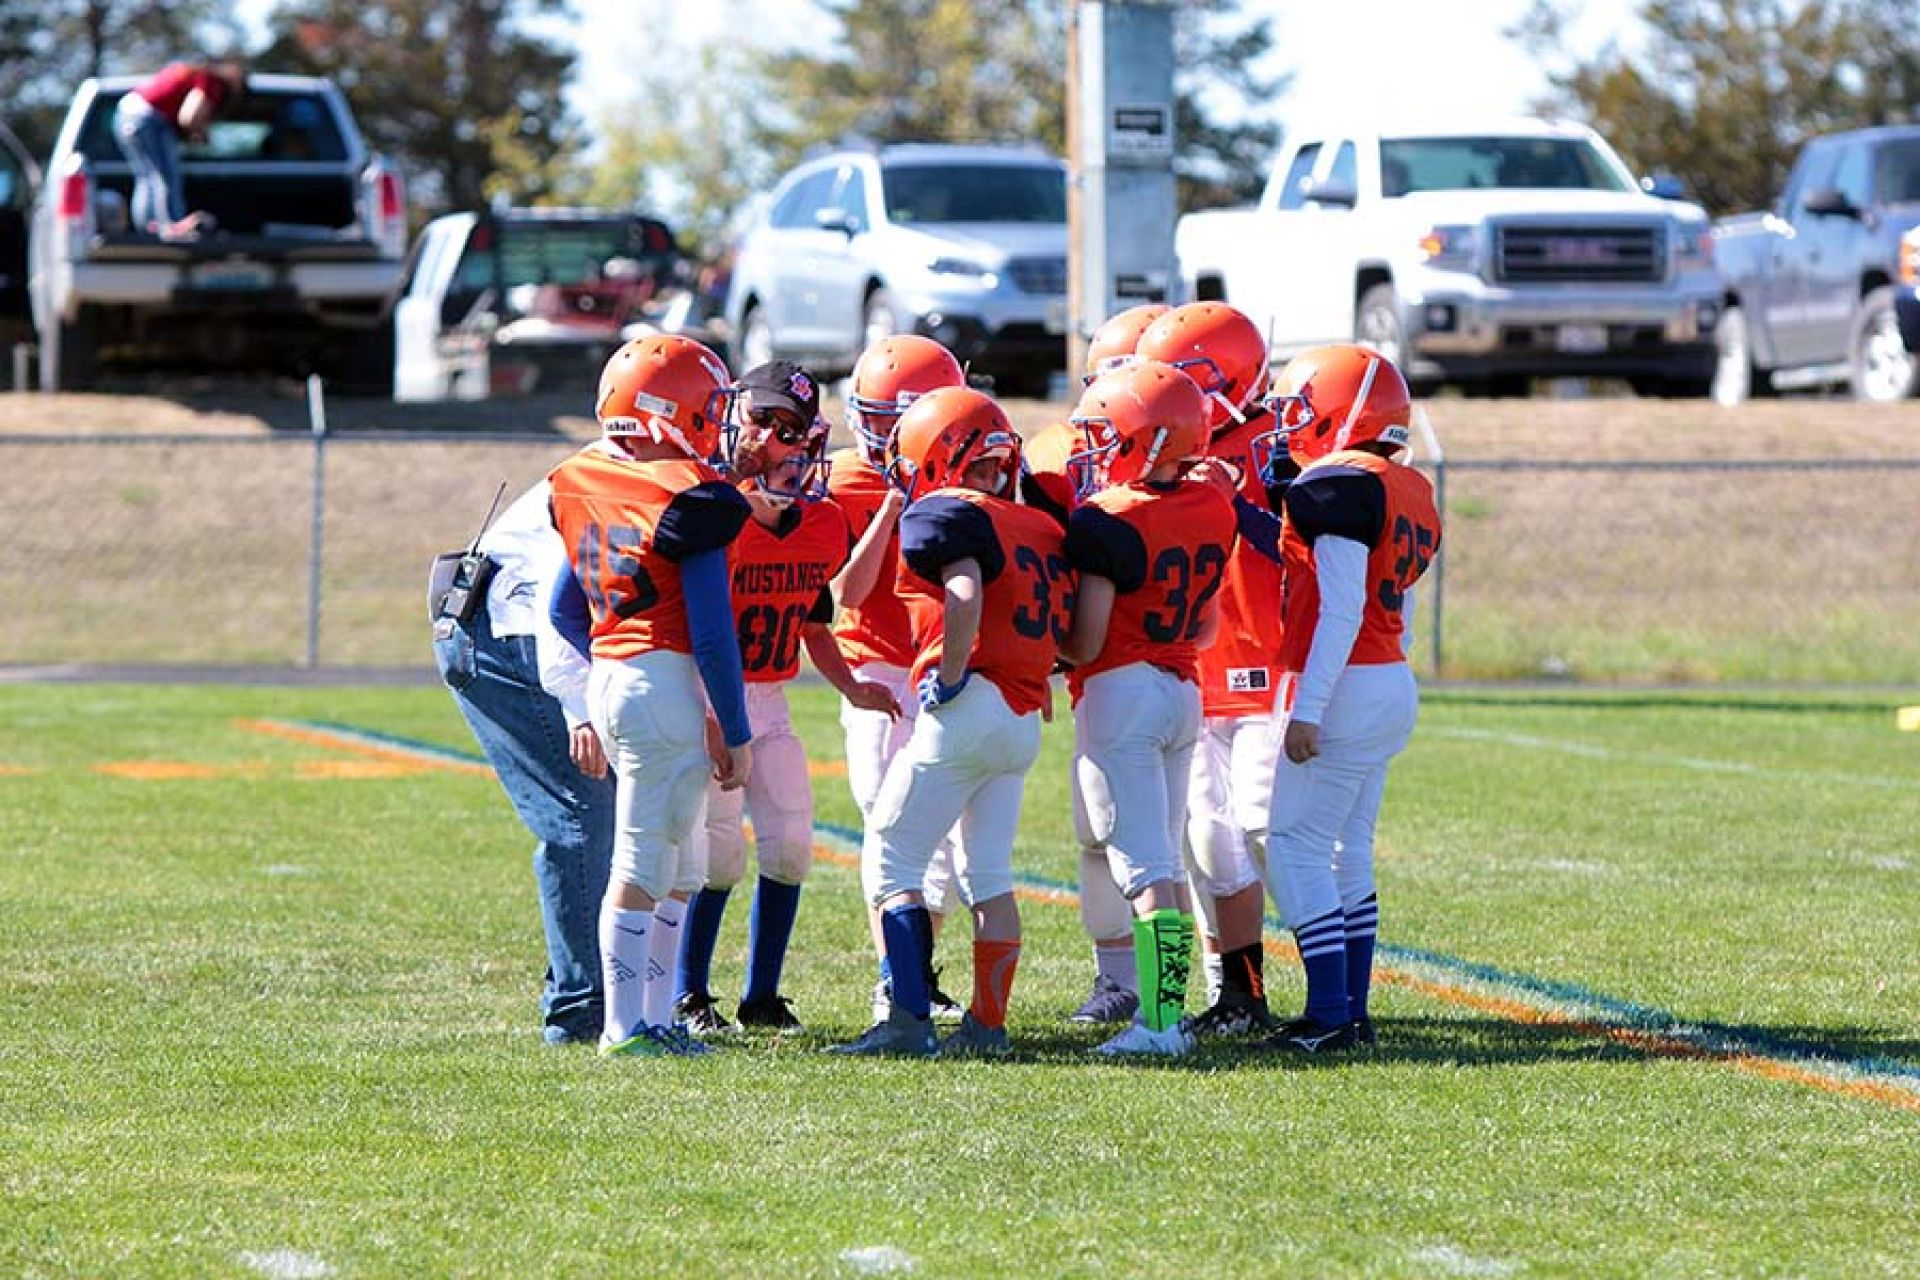 Youth football program preparing kids for future